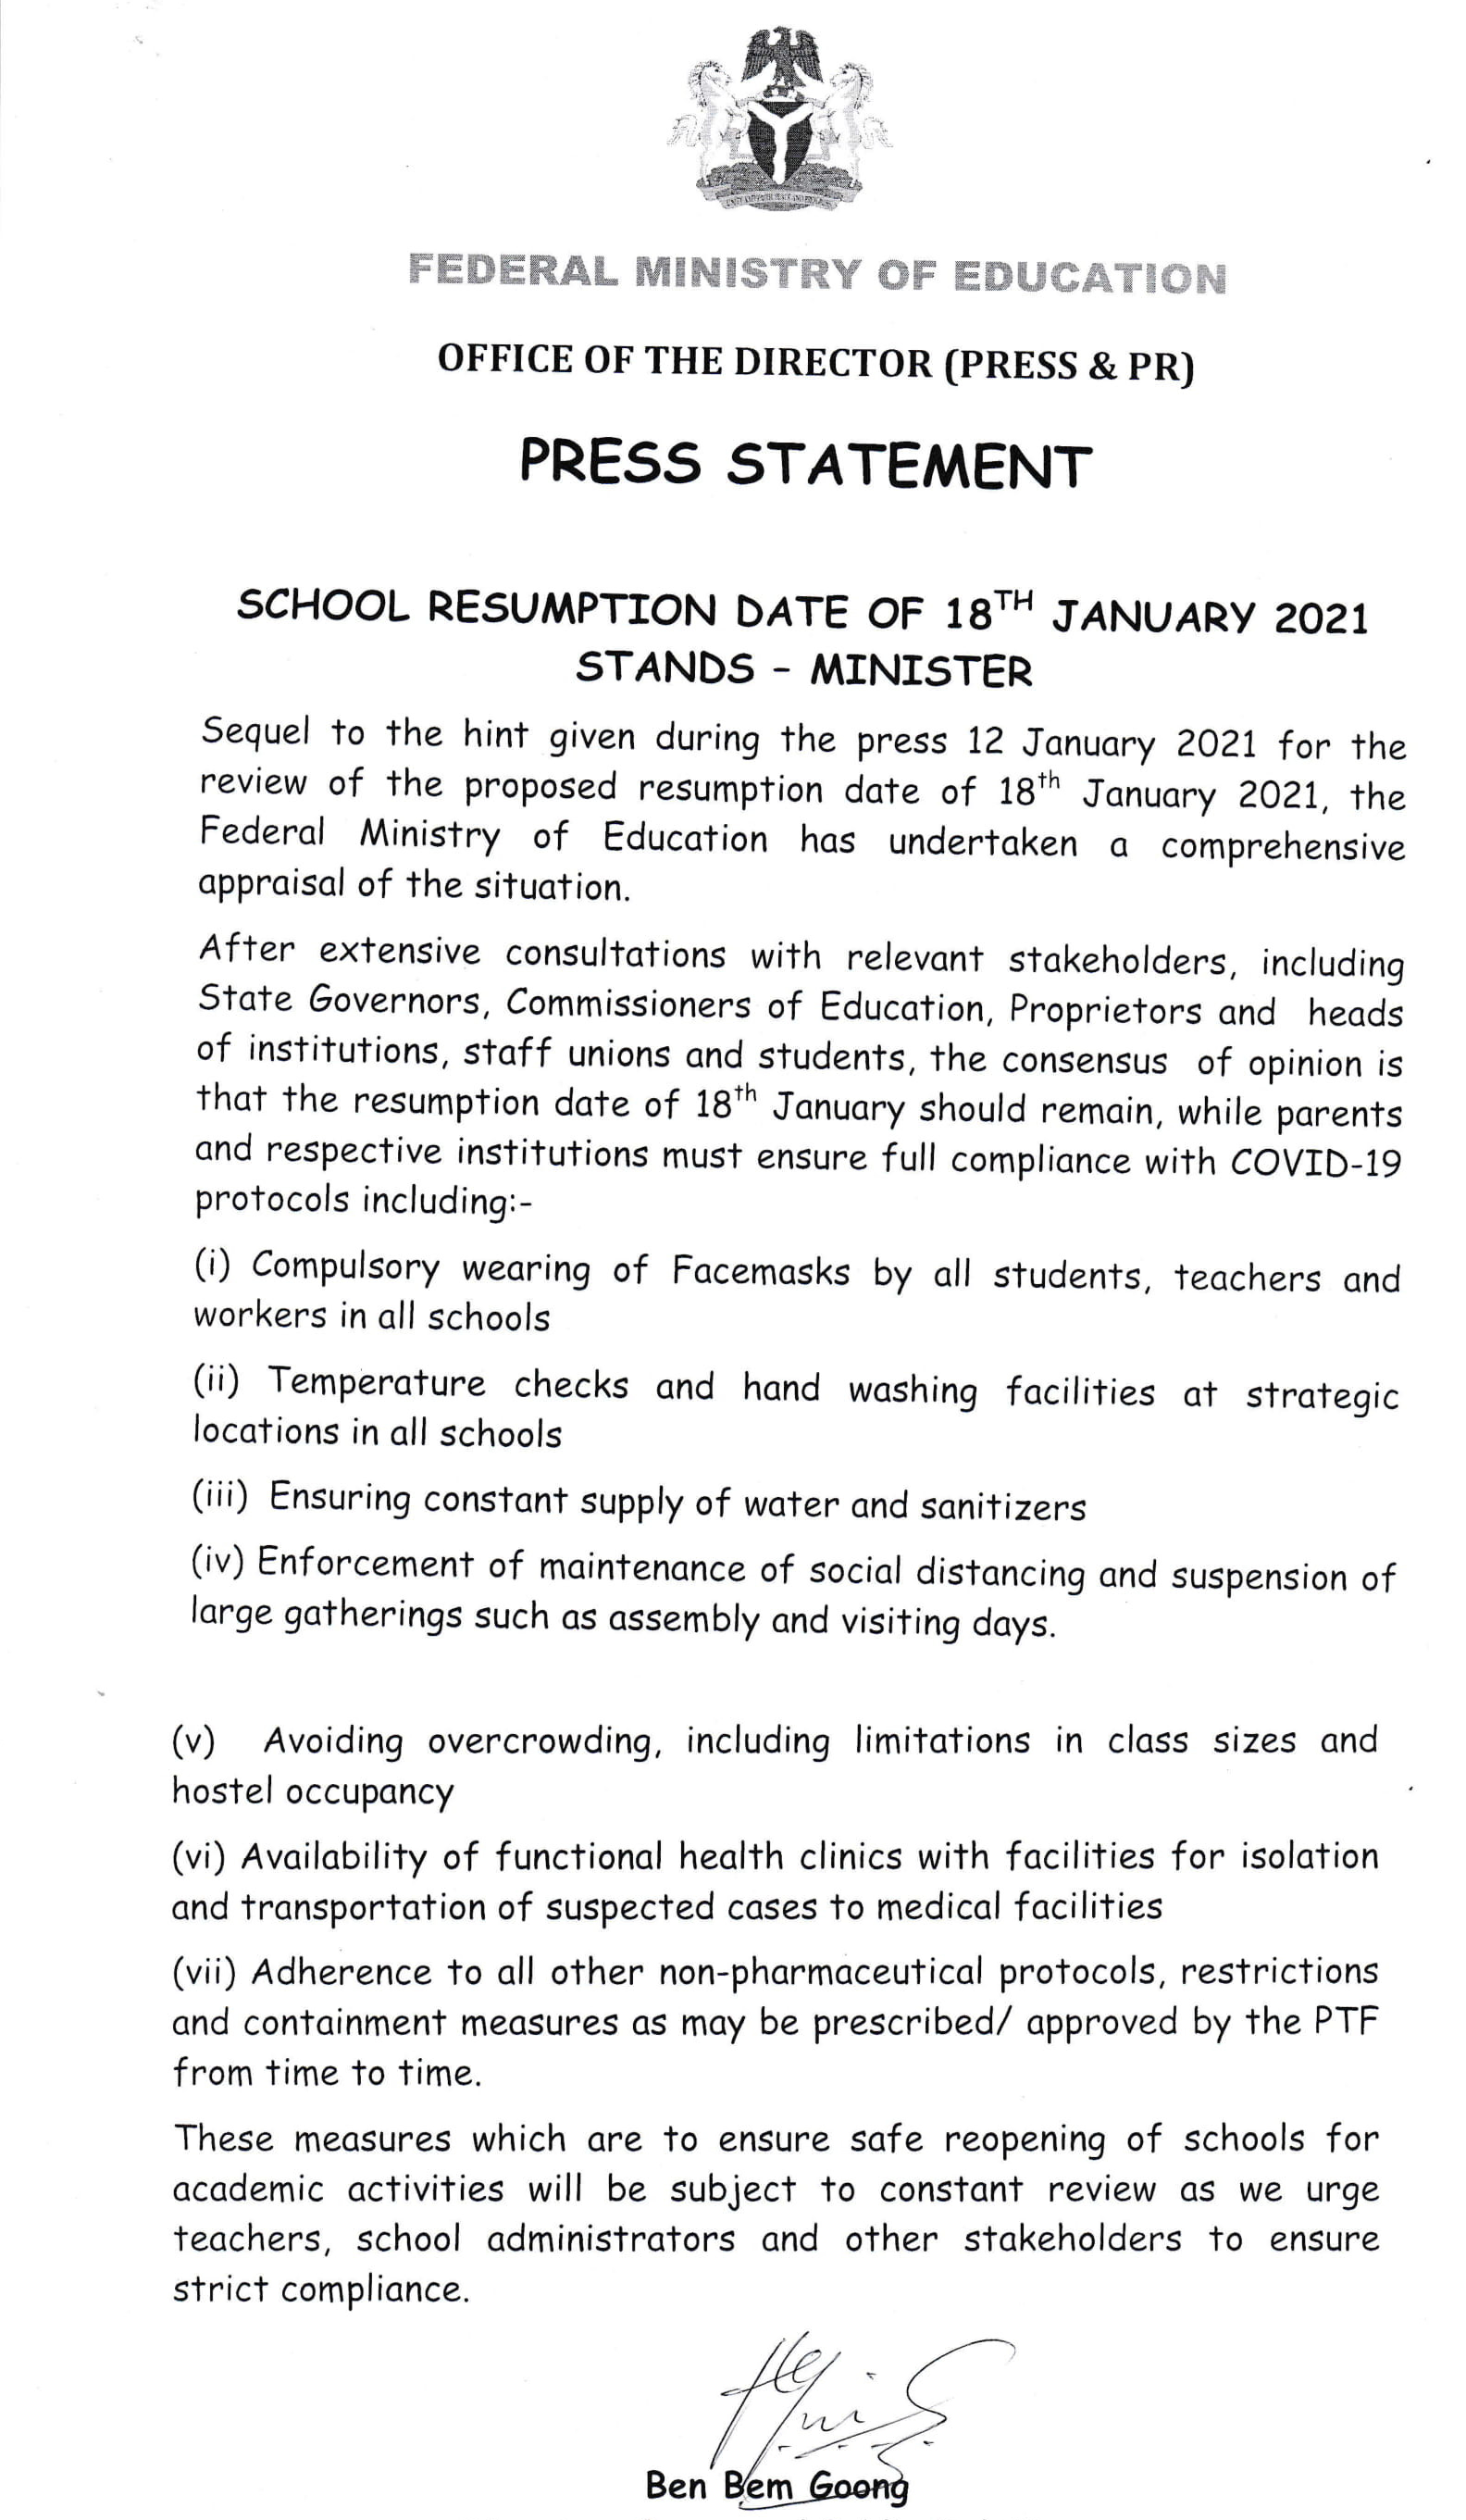 Federal government press release on School resumption dates